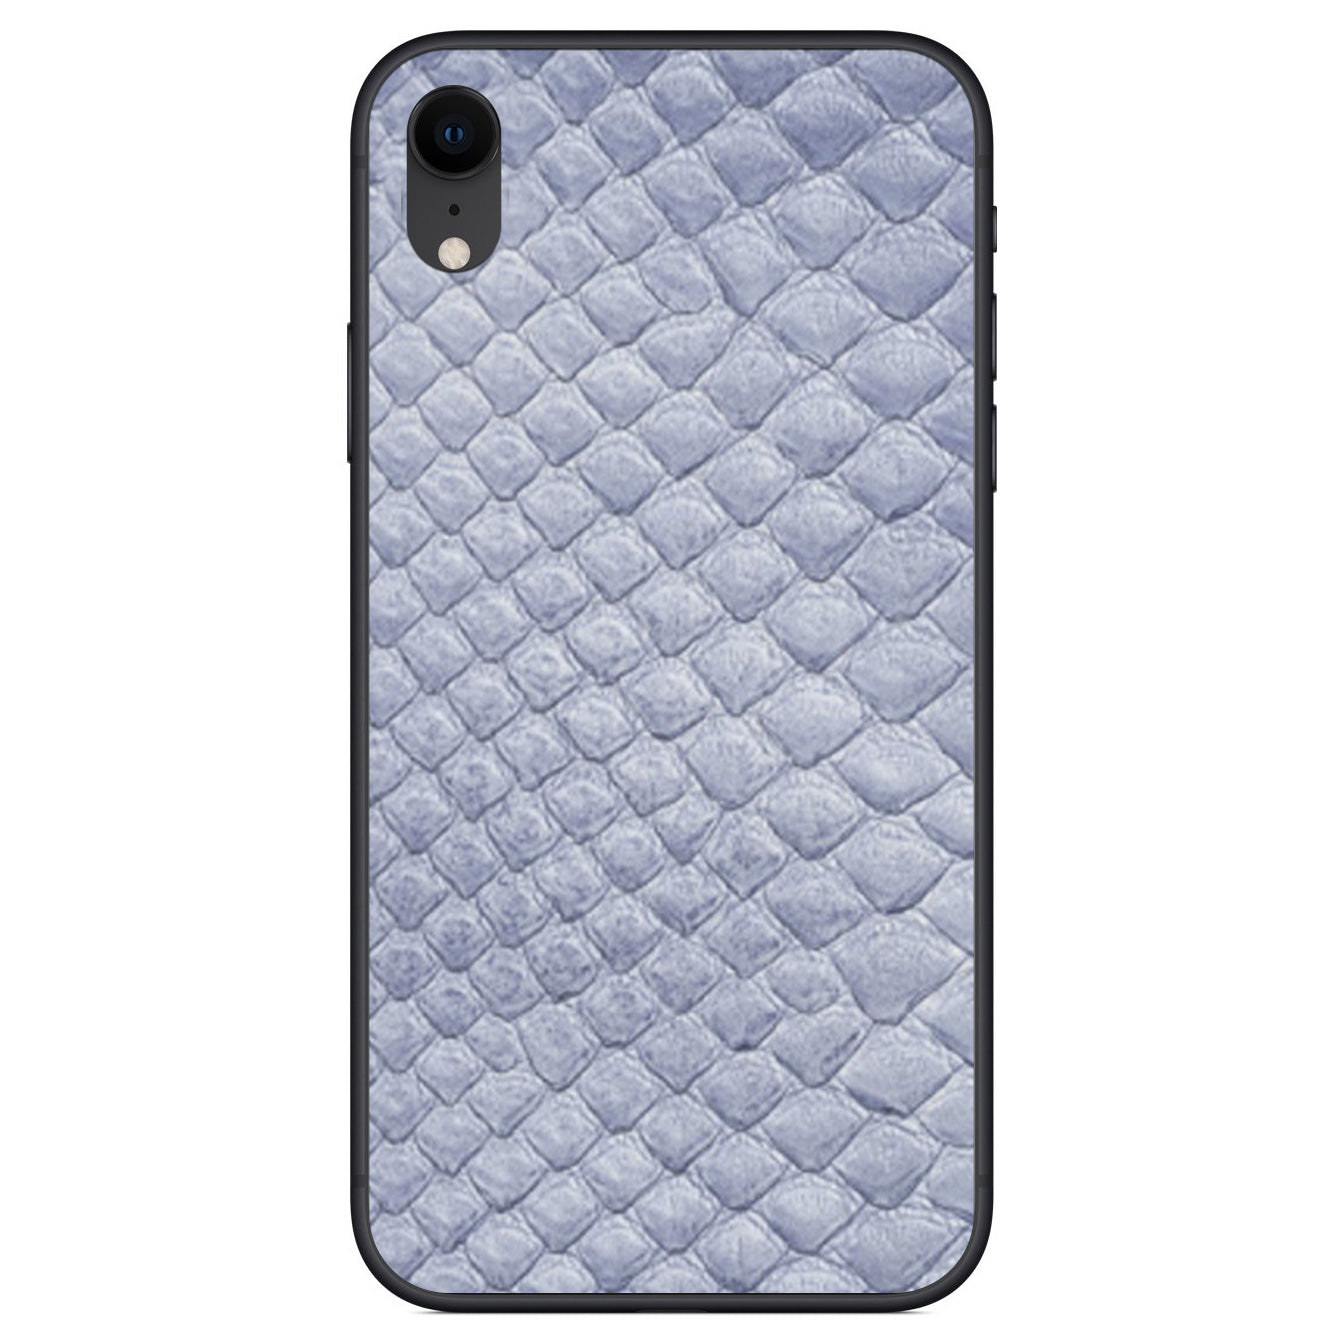 Sea Python Back iPhone XR Leather Skin